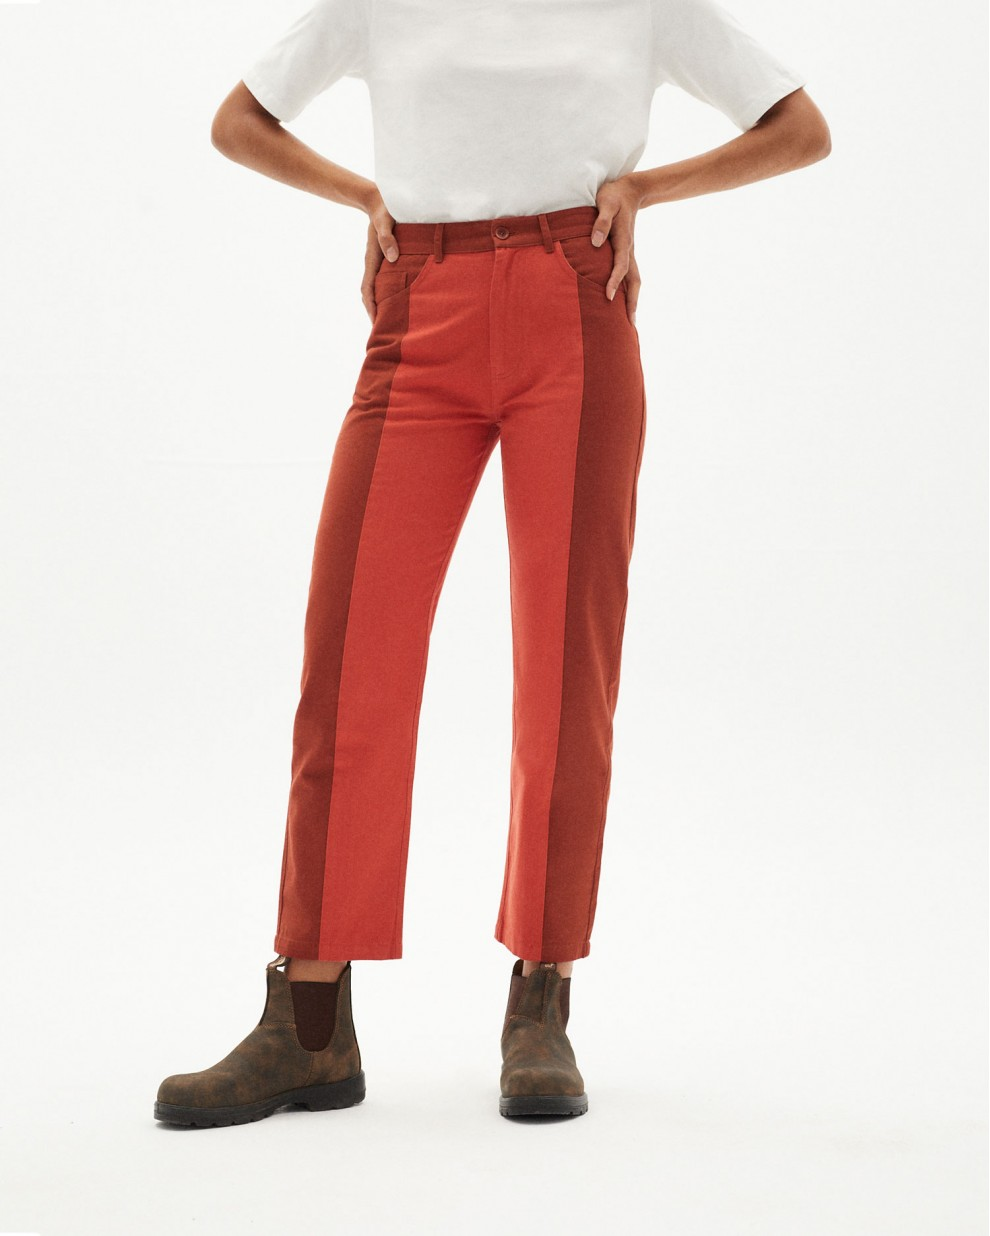 PANTALON NELE PATCHED CLAY RED